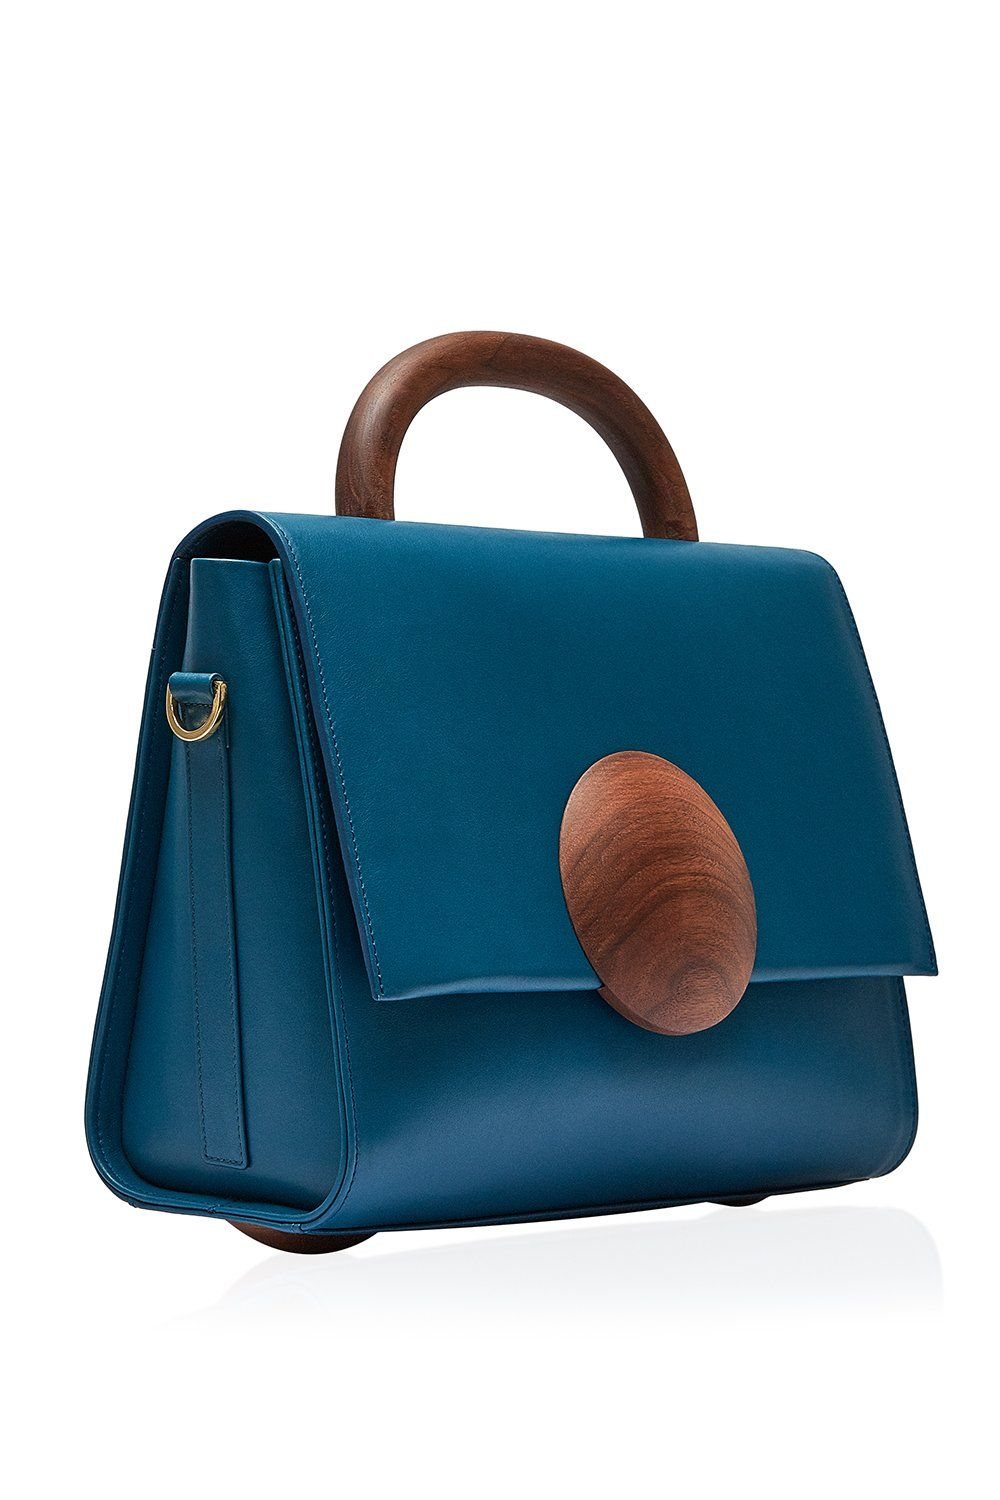 e9bf0d8f8d97 Tussaud Wood Bag in Blue